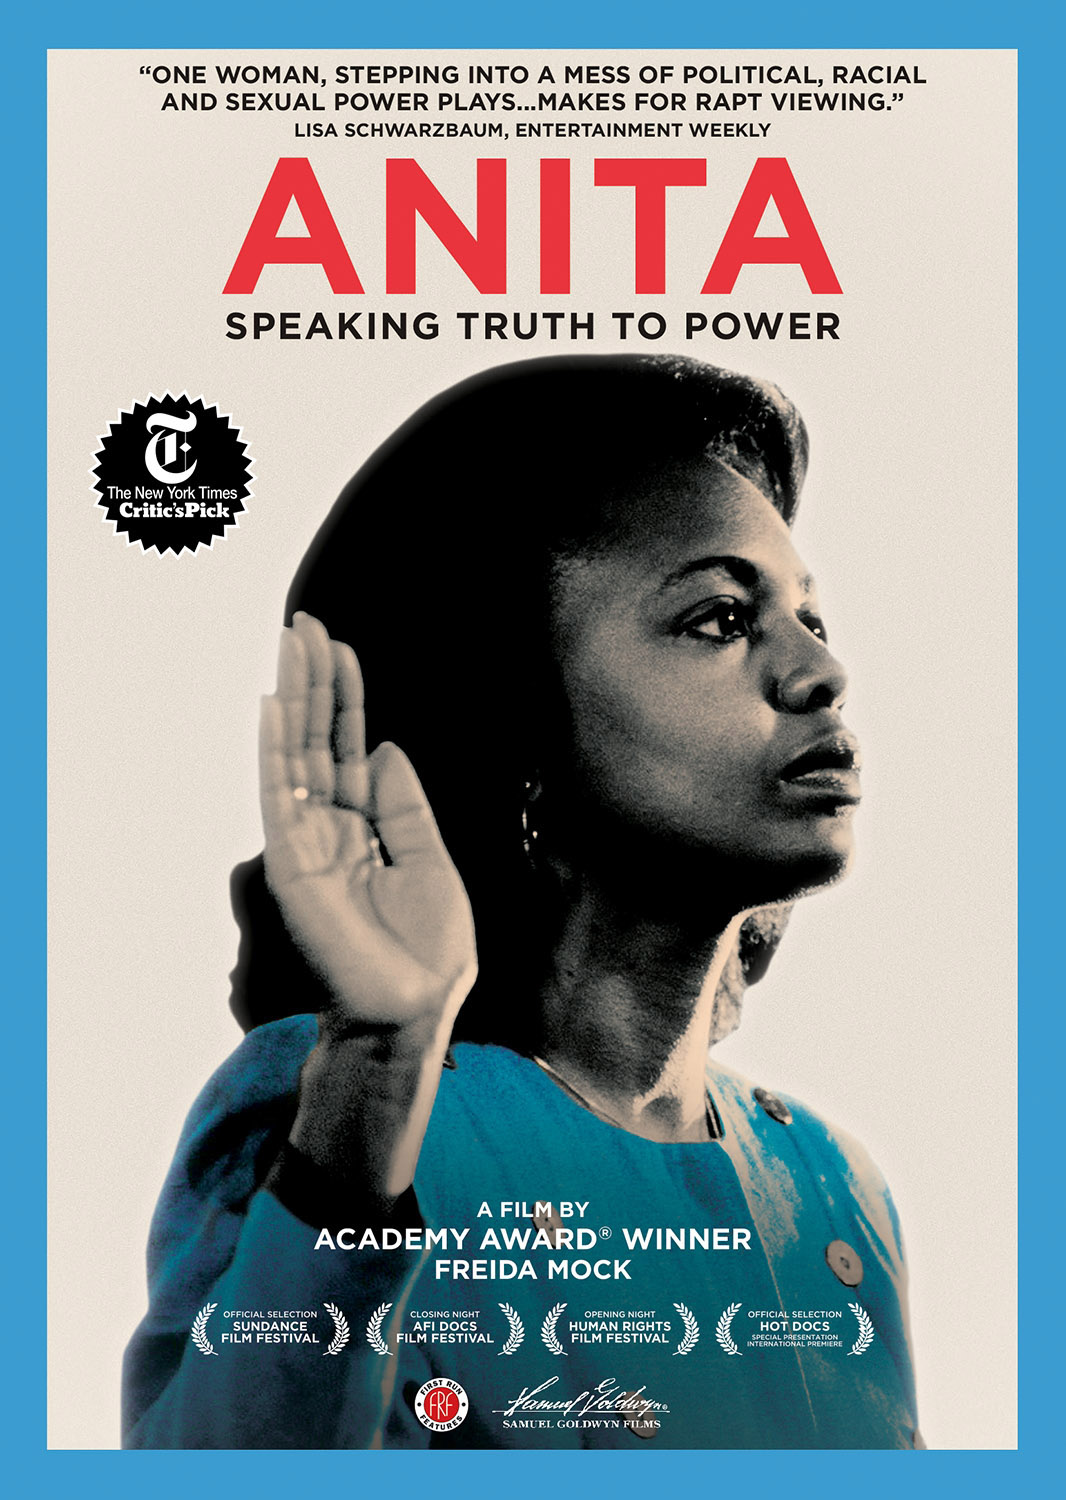 picture-of-anita-speaking-truth-to-power-photo.jpg